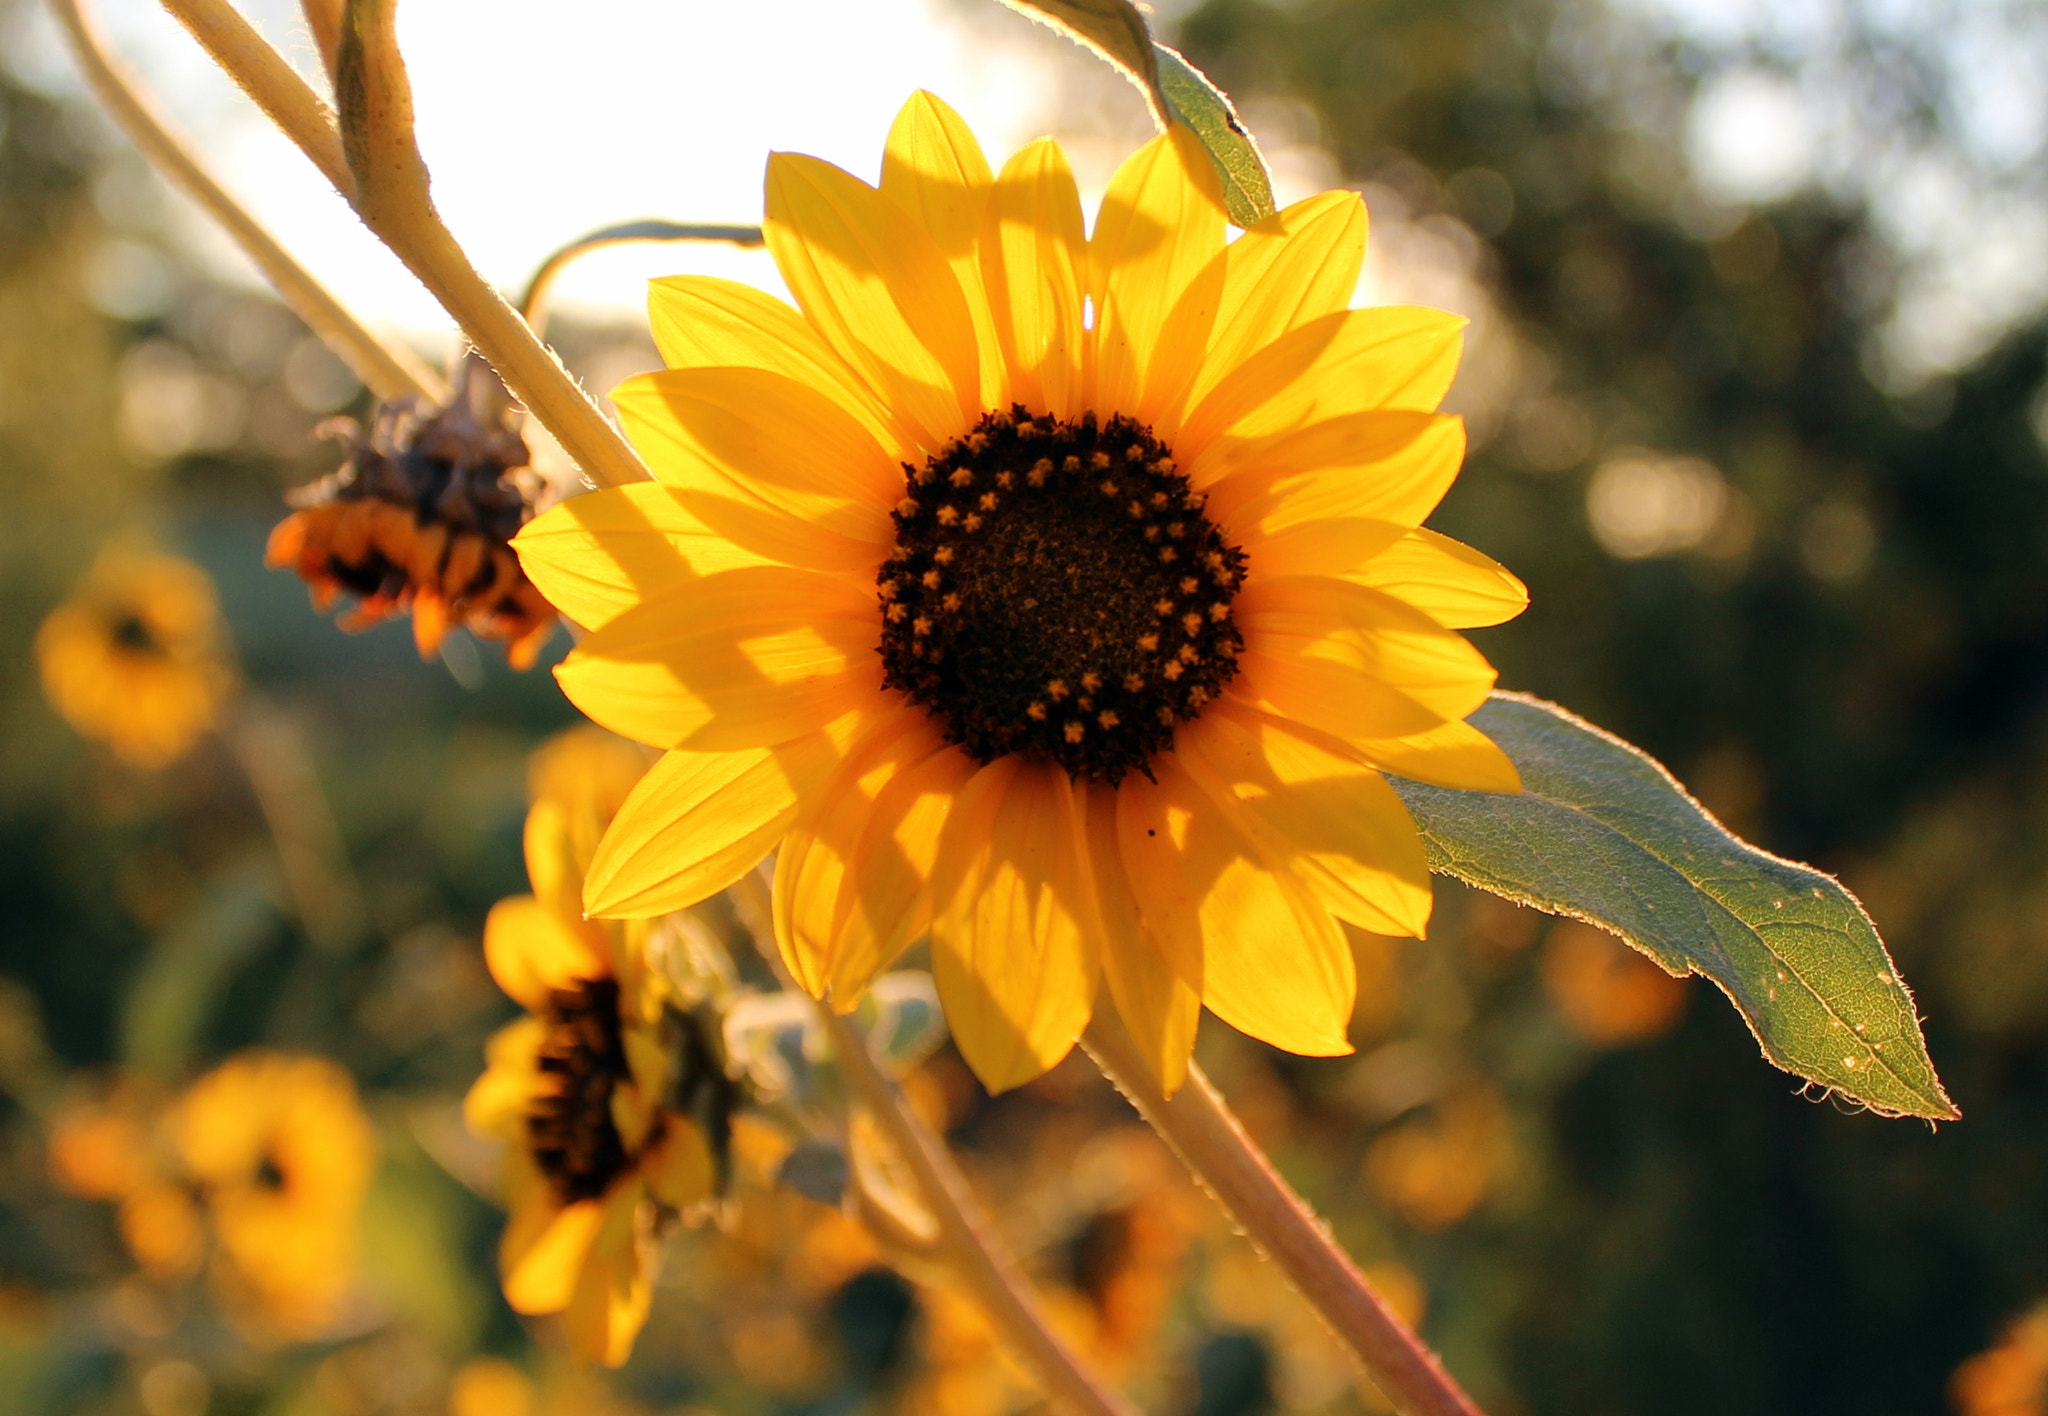 Photograph Sunflower Shadows by Leigh Taylor on 500px